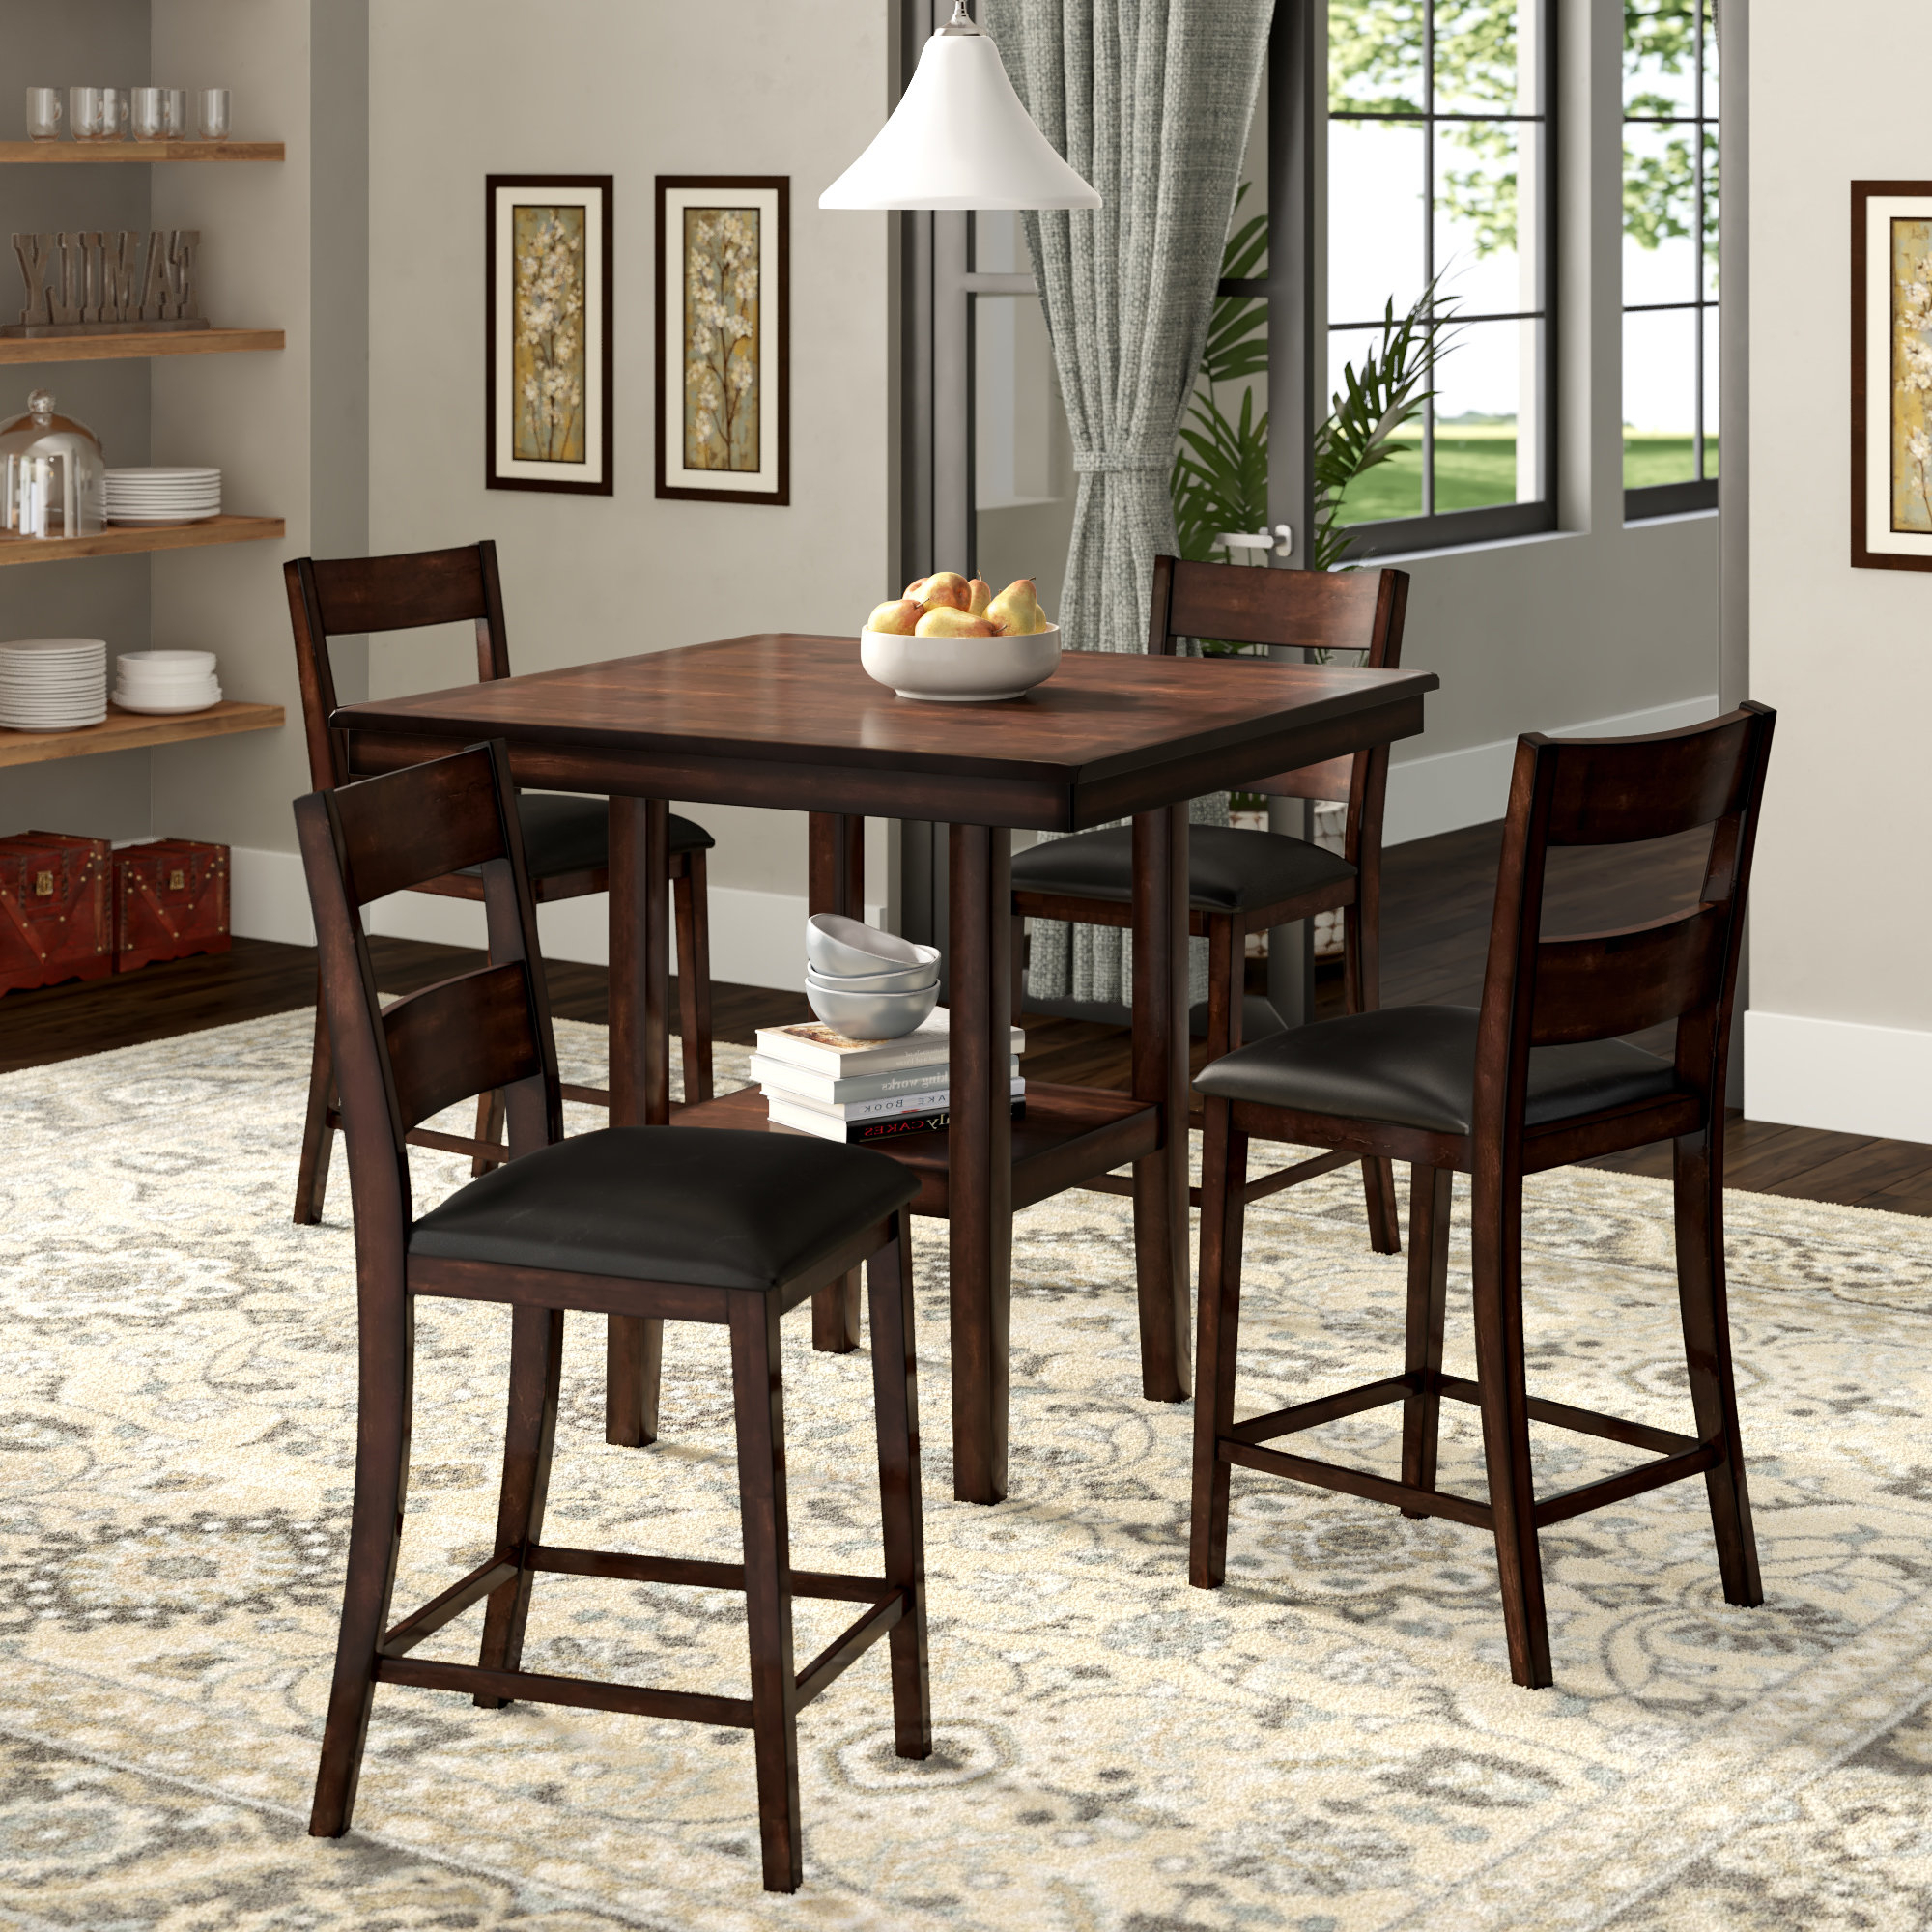 Wayfair Pertaining To Famous Winsted 4 Piece Counter Height Dining Sets (View 19 of 20)